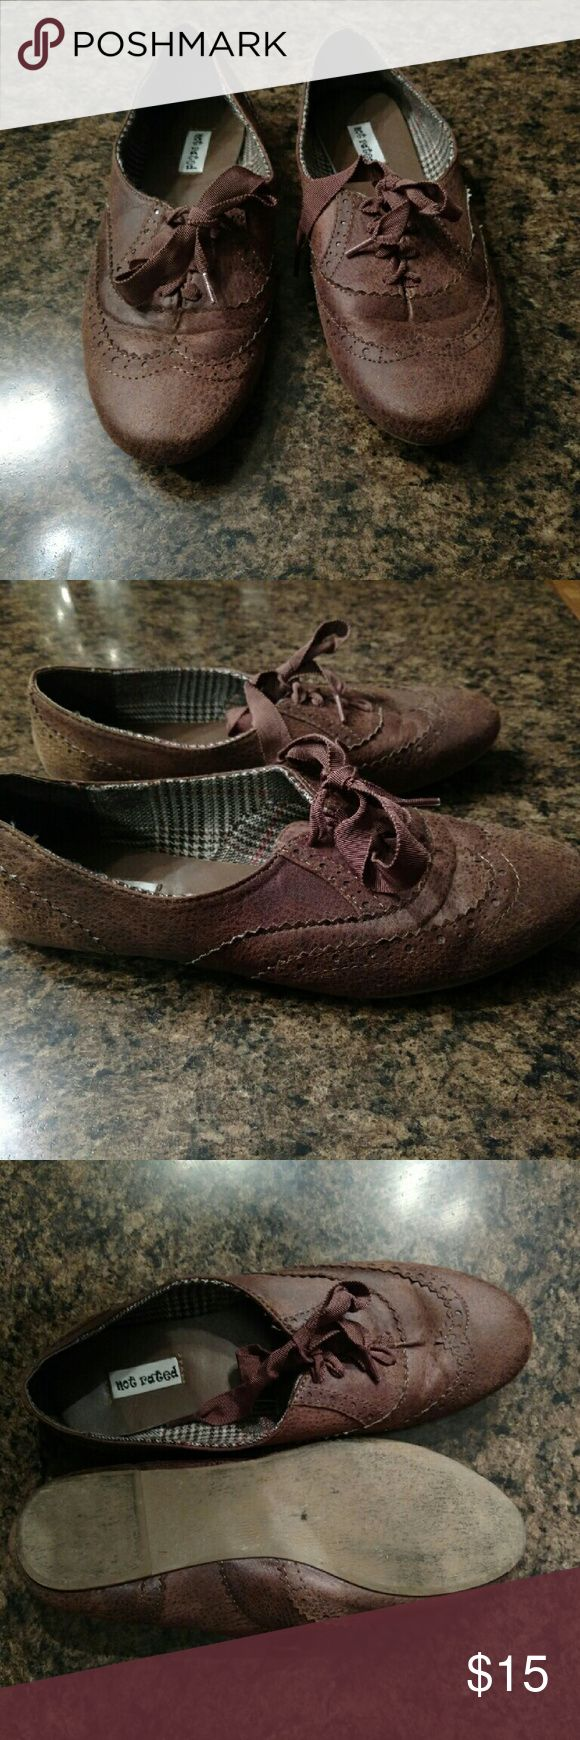 Not Rated Cognac tie up shoes Beautiful cognac color, worn, but very nice looking and very soft. Not Rated Shoes Flats & Loafers